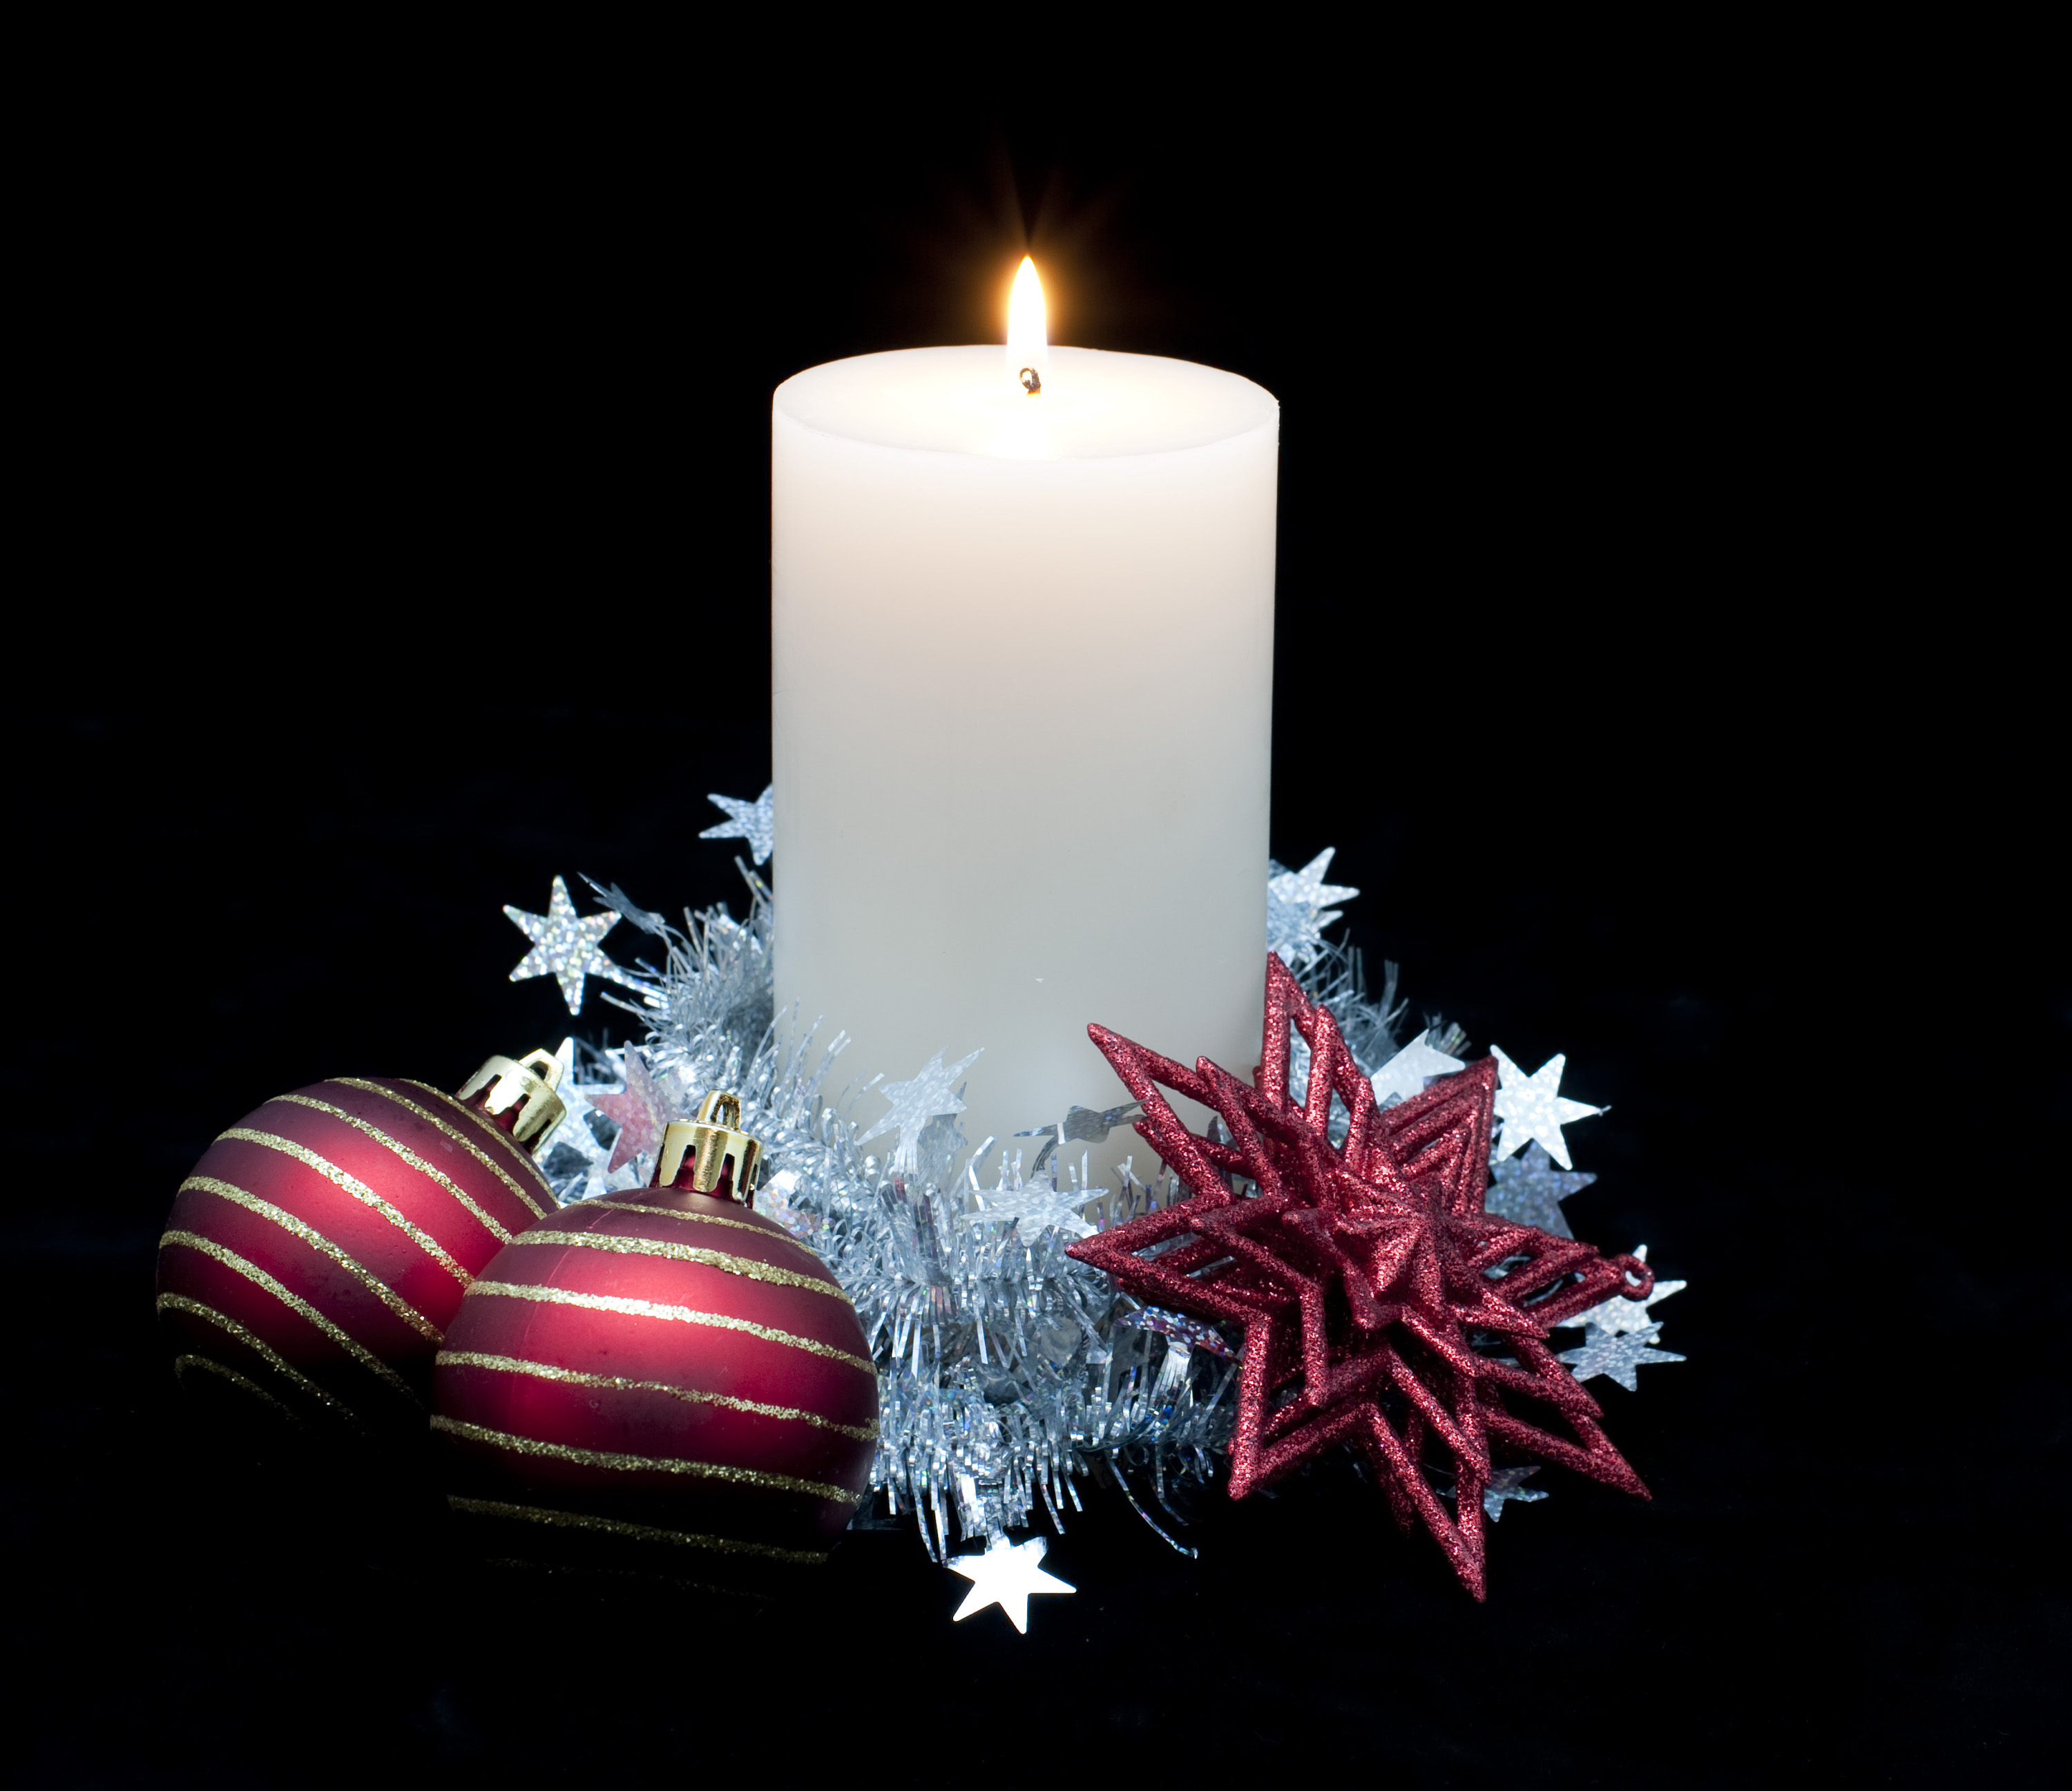 a large pillar candle surrounded by seasonal decorations on a black backdrop